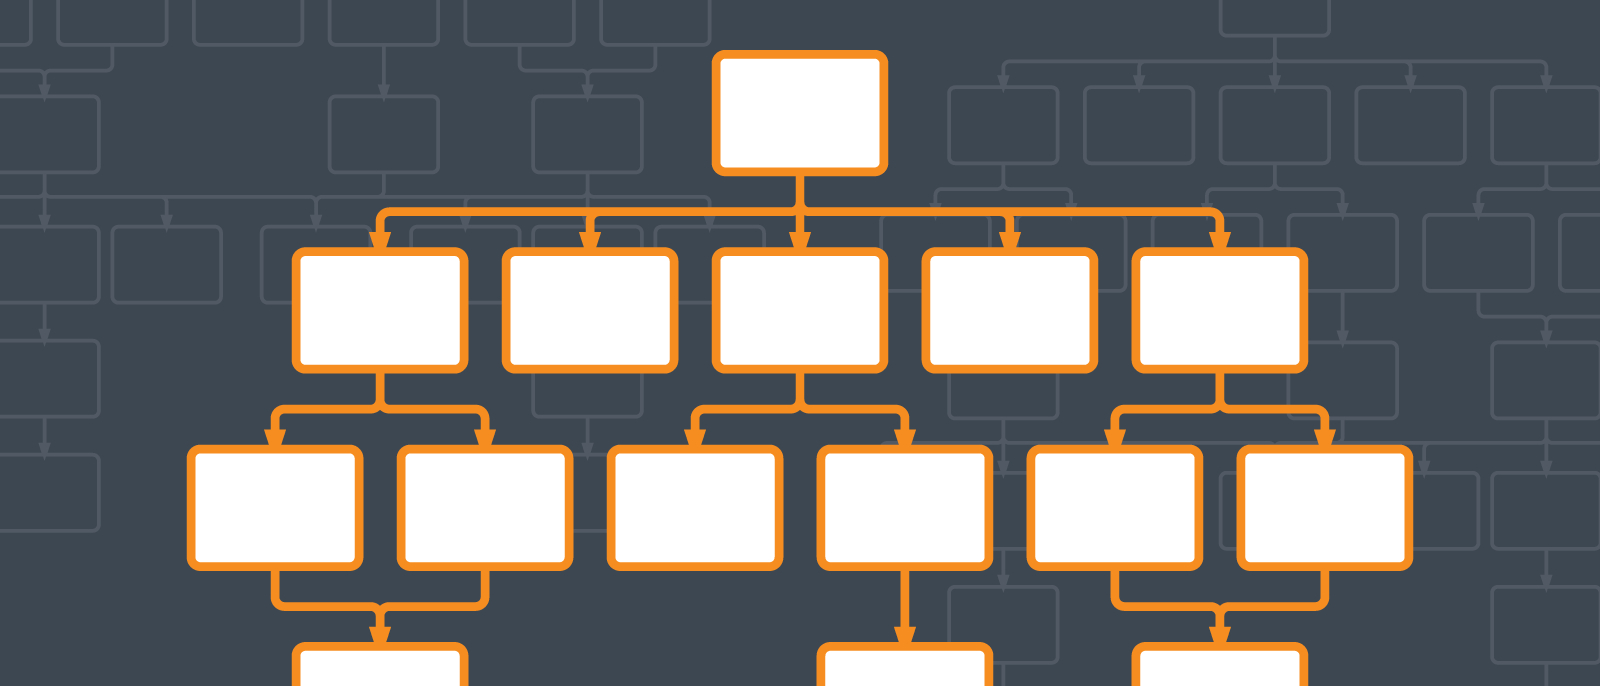 How To Create A Shared Google Spreadsheet With How To Make A Flowchart In Google Docs  Lucidchart